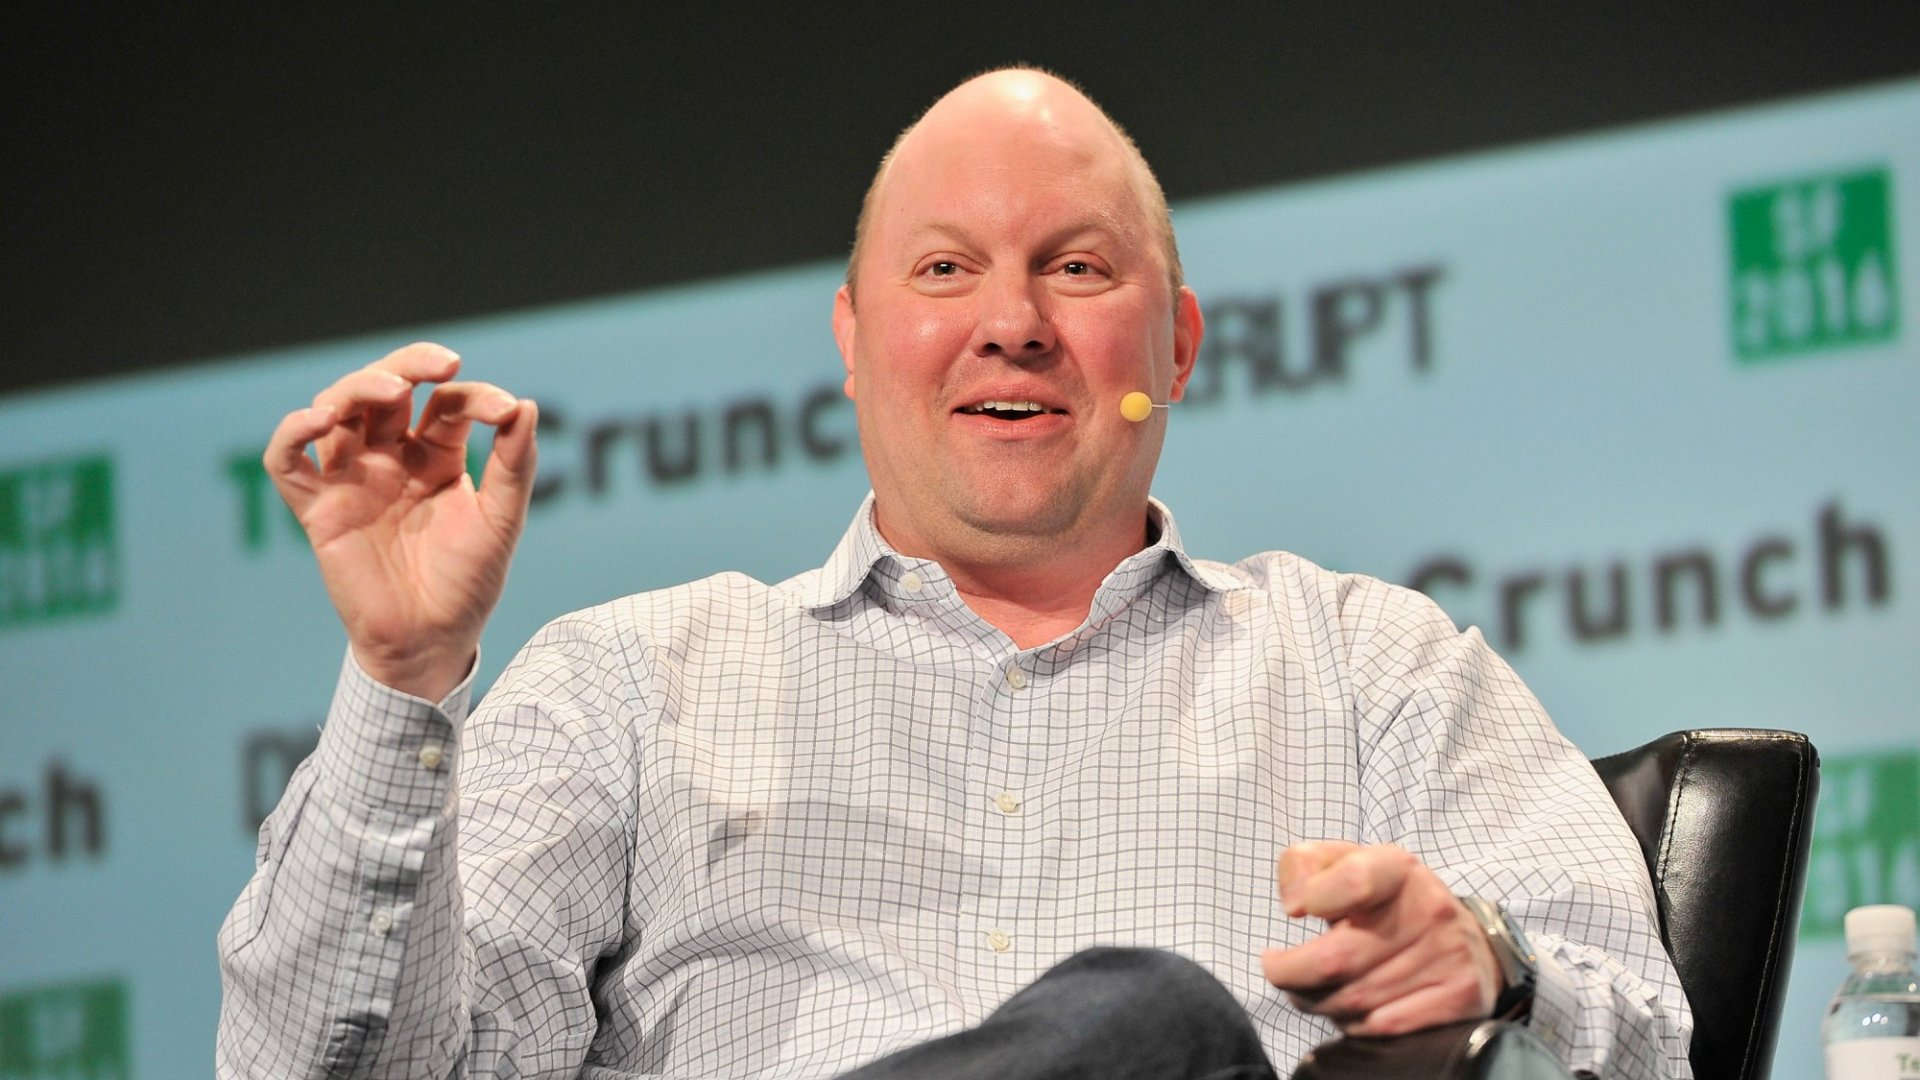 Marc Andreessen Returns to Twitter With an Offer: Pay Me $20 to Ask Me Anything